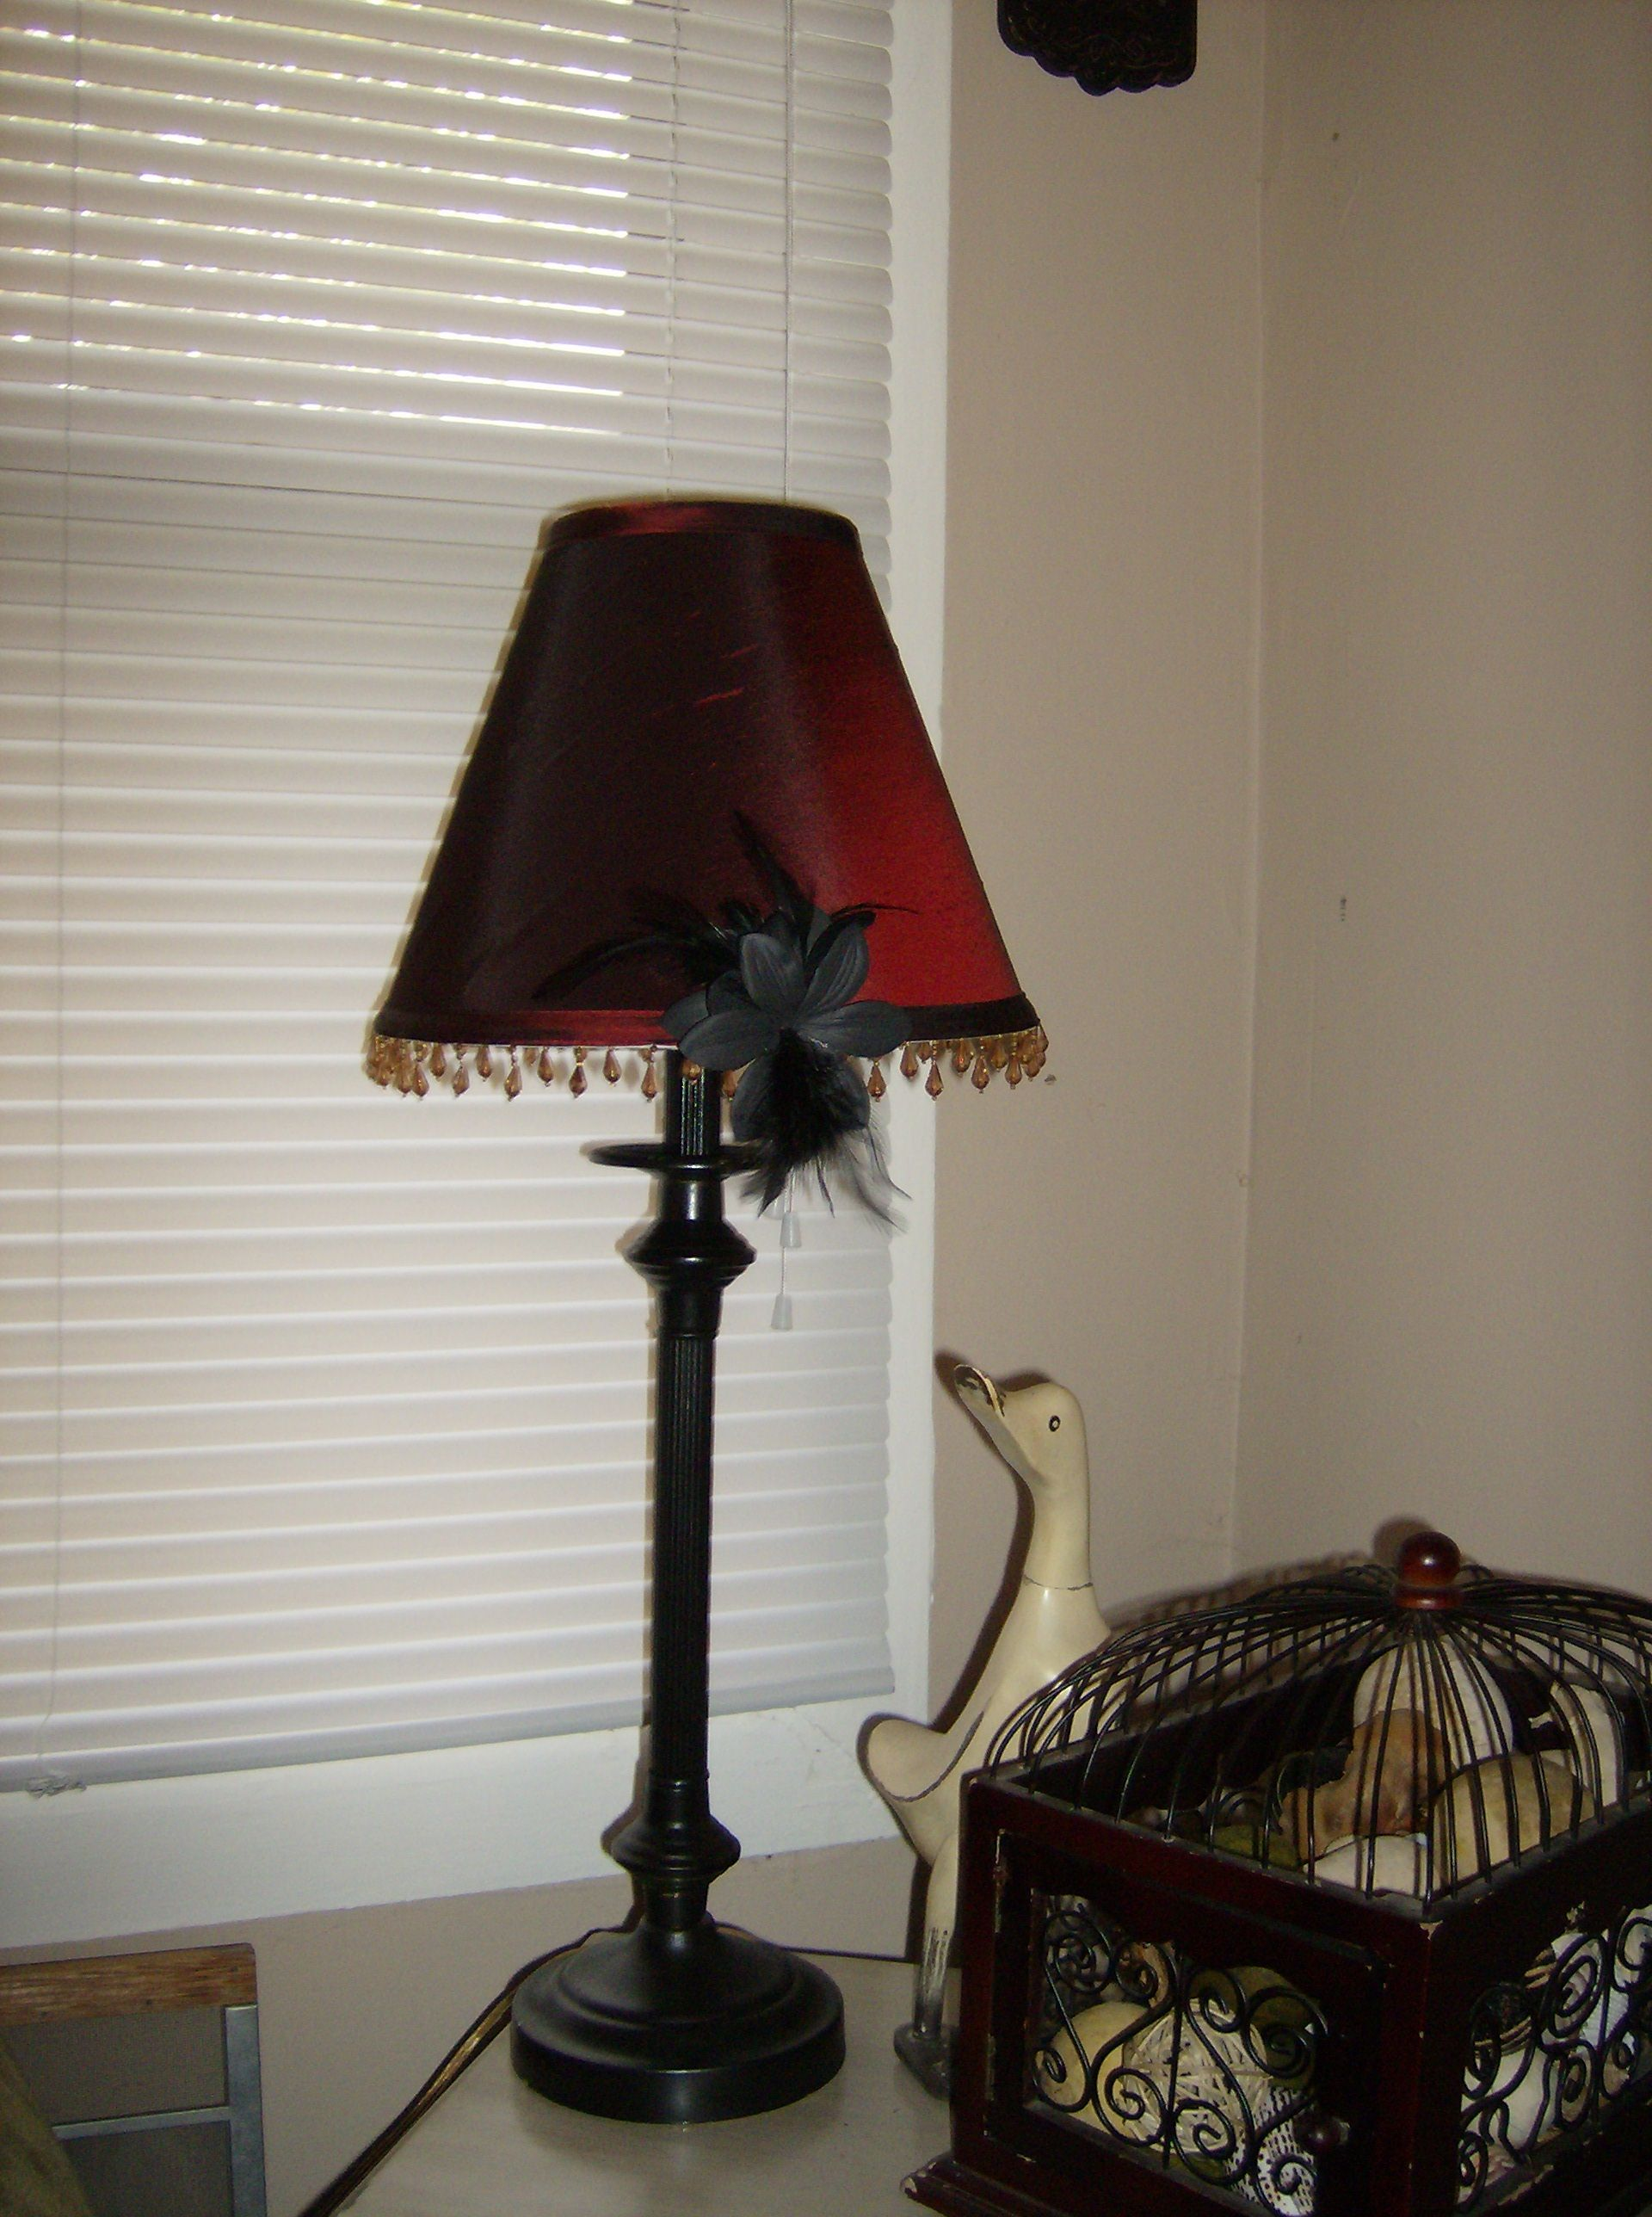 Hobby Lobby Lamp Shades Awesome Repurposed Lamp Shade Ala Hobby Lobby Projects  Pinterest Review